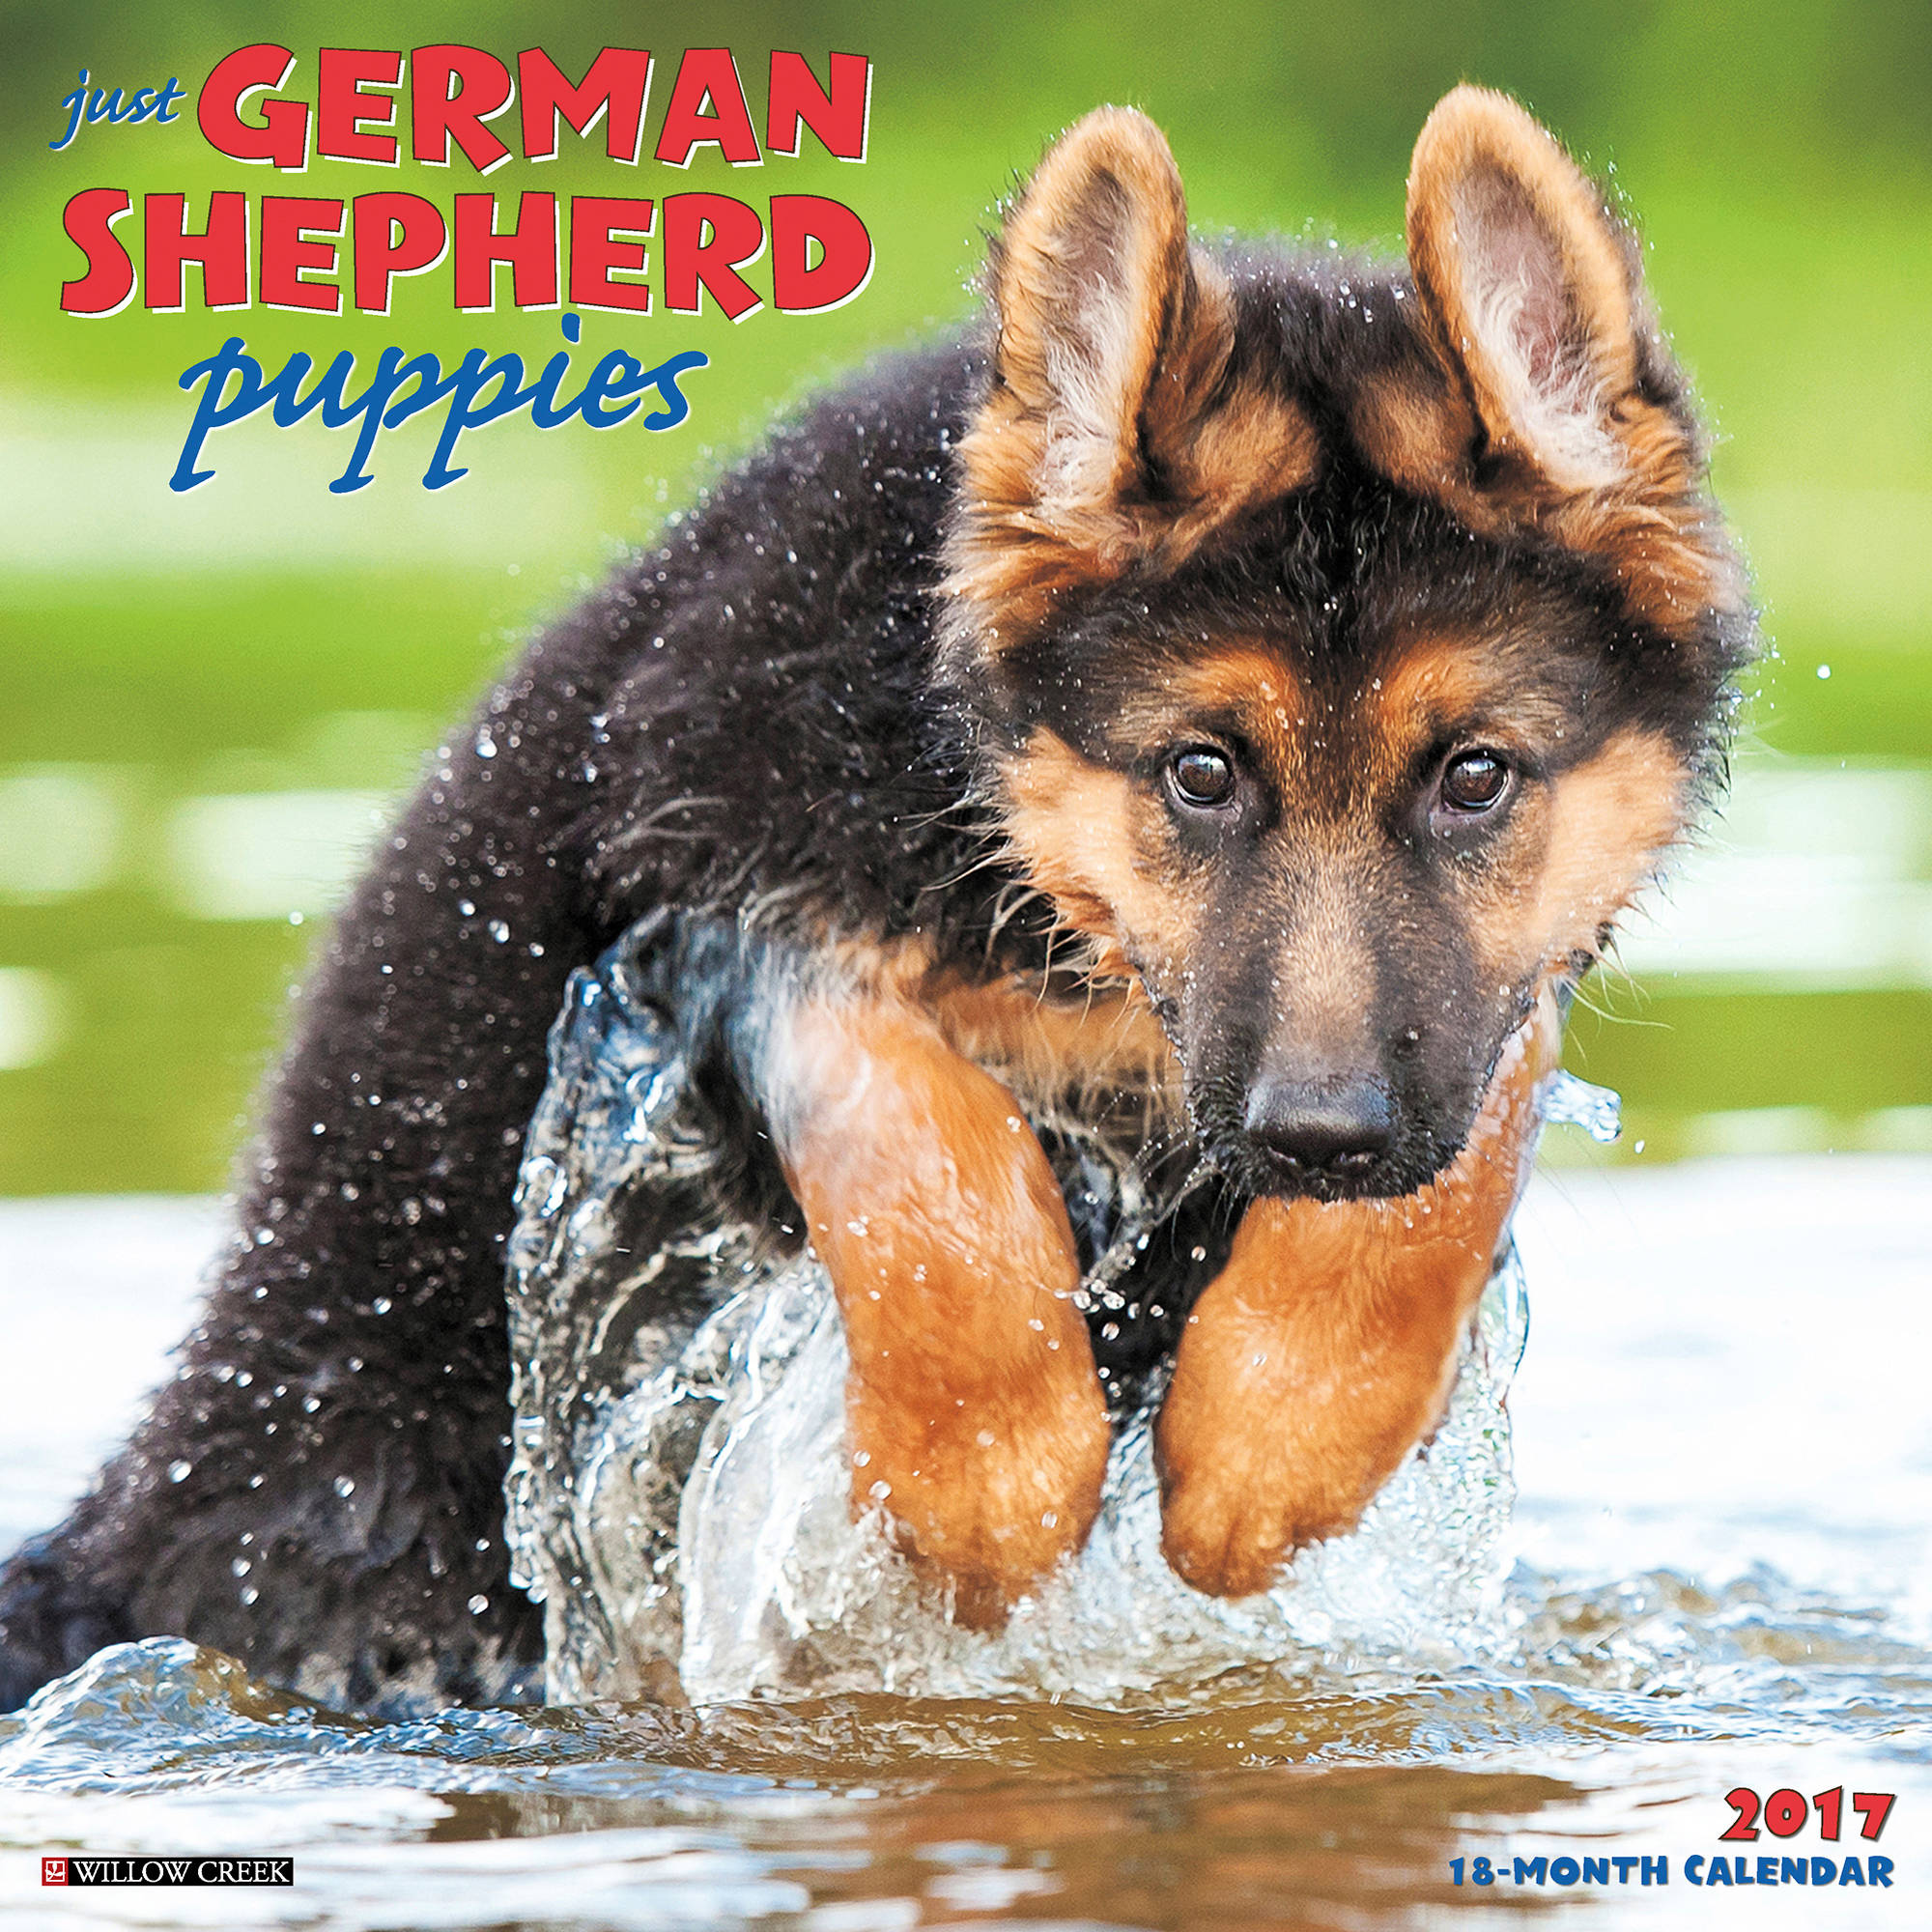 2017 Just German Shepherd Puppies Wall Calendar